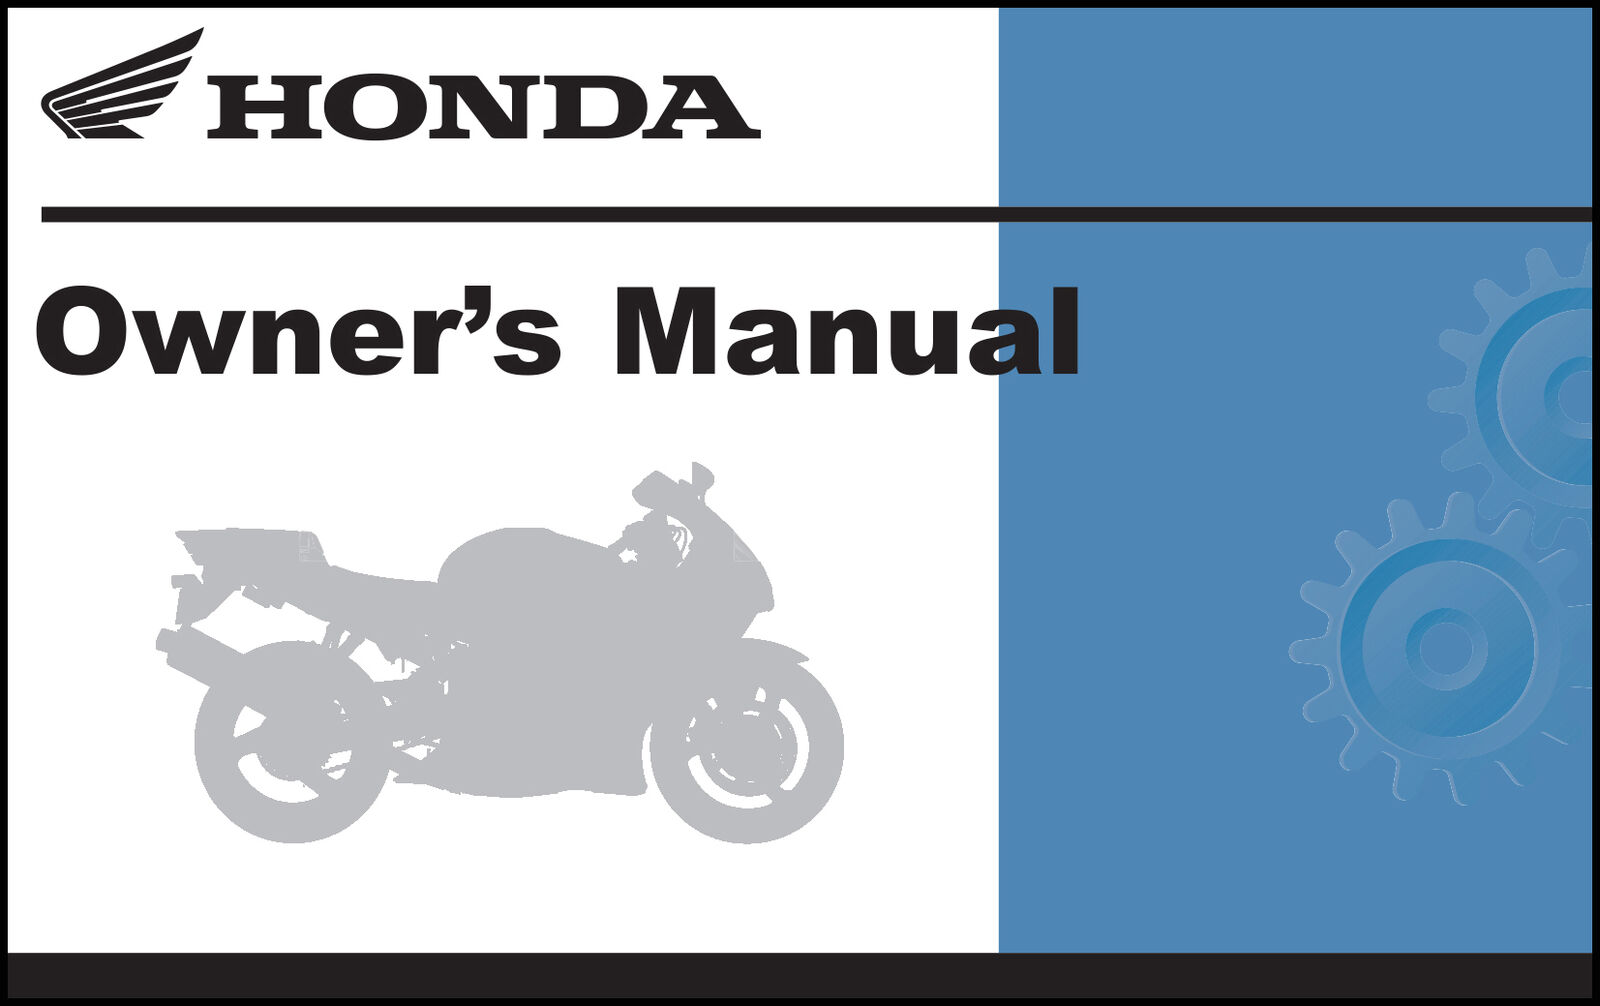 honda 1999 xr100r owner manual 99 22 95 picclick rh picclick com 2003 xr100r owners manual 2002 honda xr100r owners manual